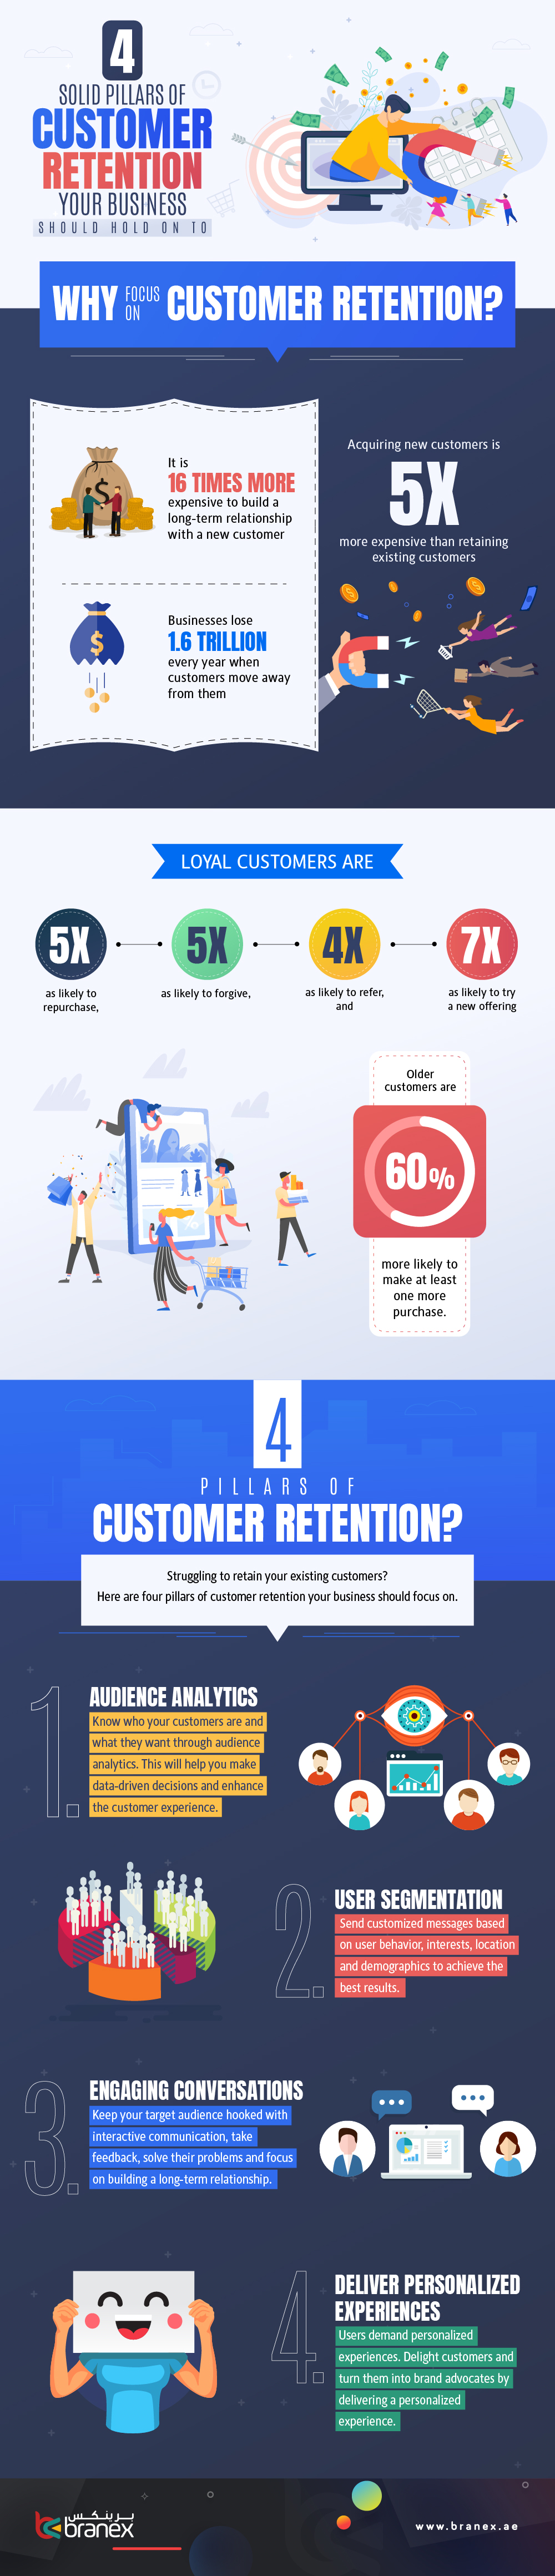 4 Solid Pillars of Customer Retention Your Business – Infographics